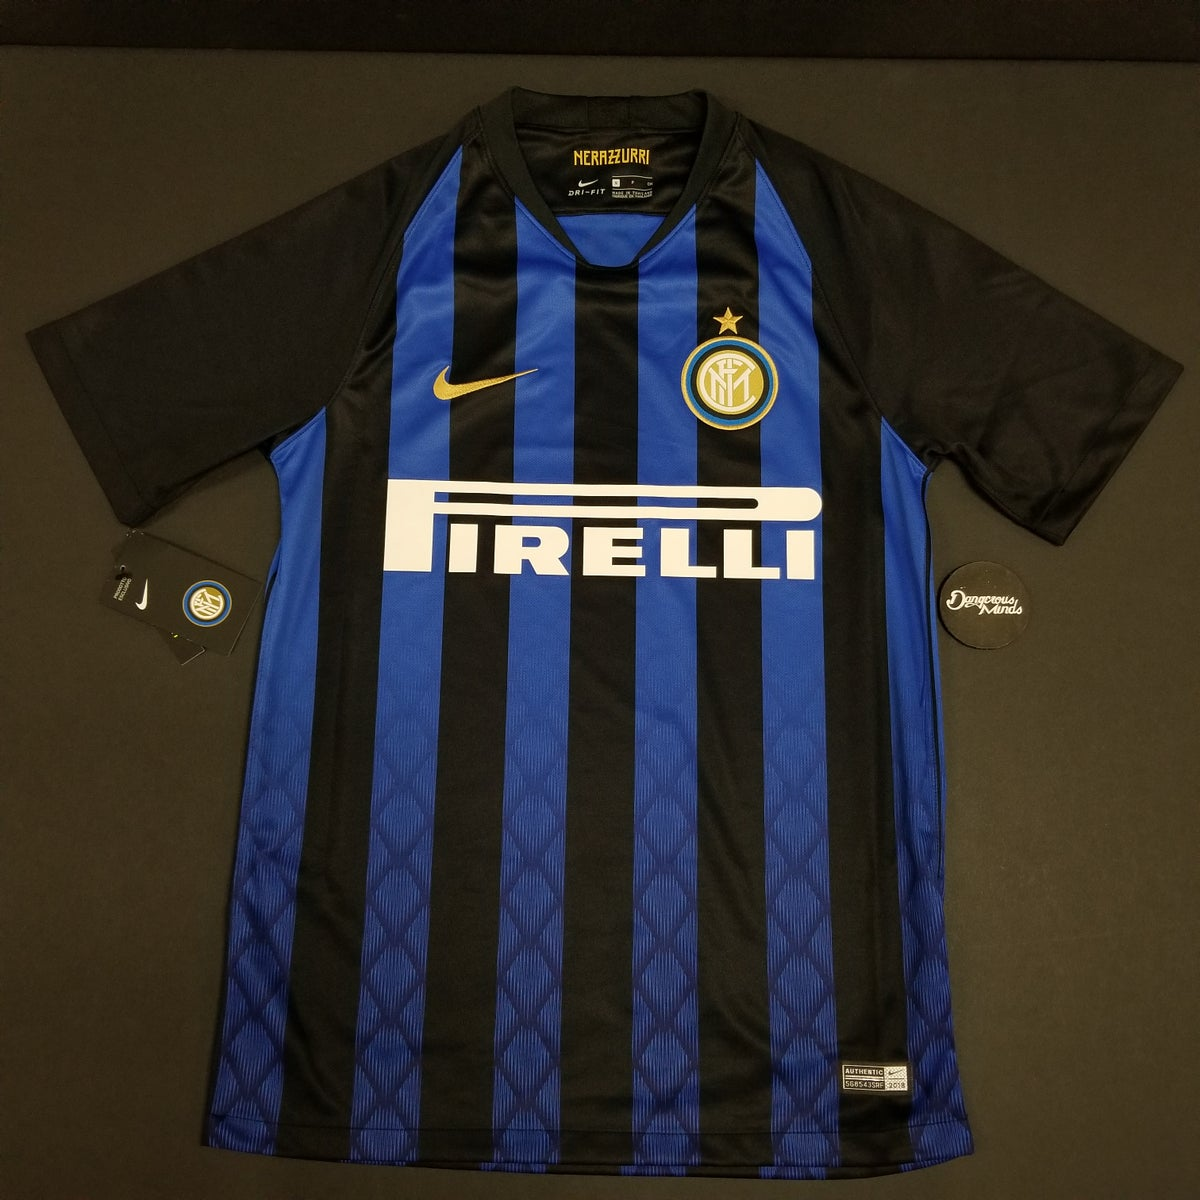 reputable site 4f46c dcc8d Nike 2018-2019 Inter Milan Home Jersey